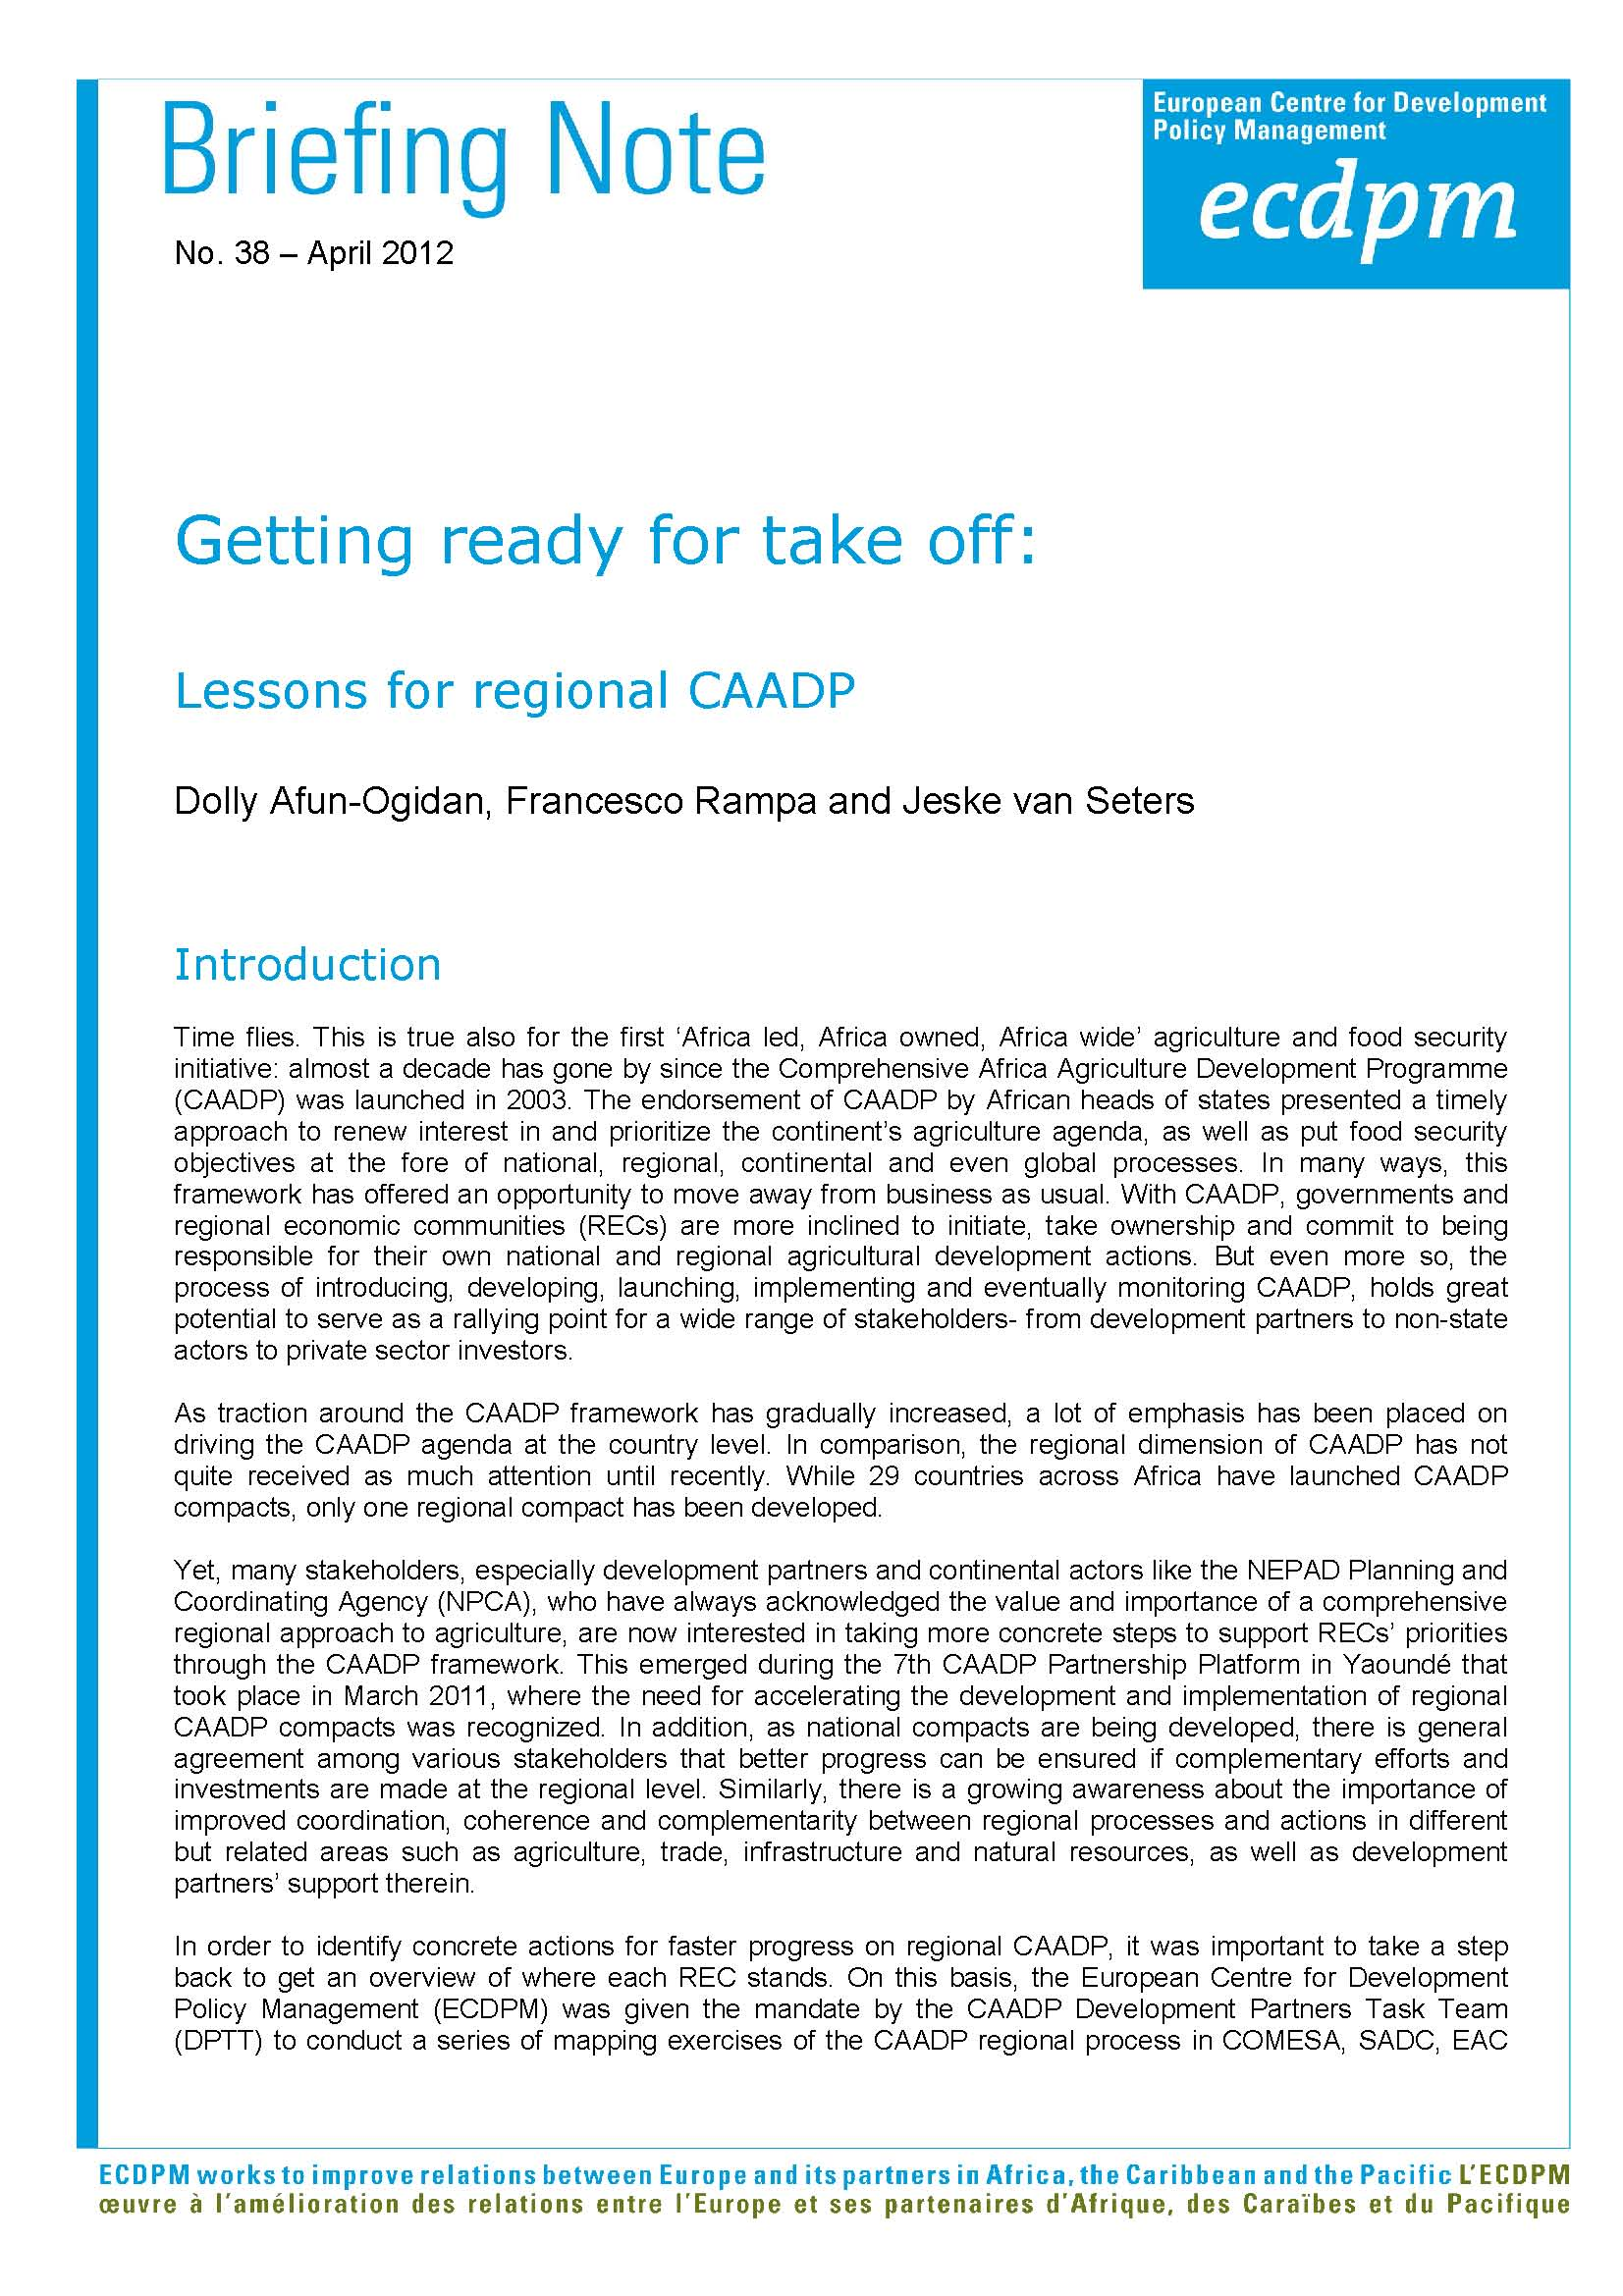 Getting ready for take off: Lessons for regional CAADP